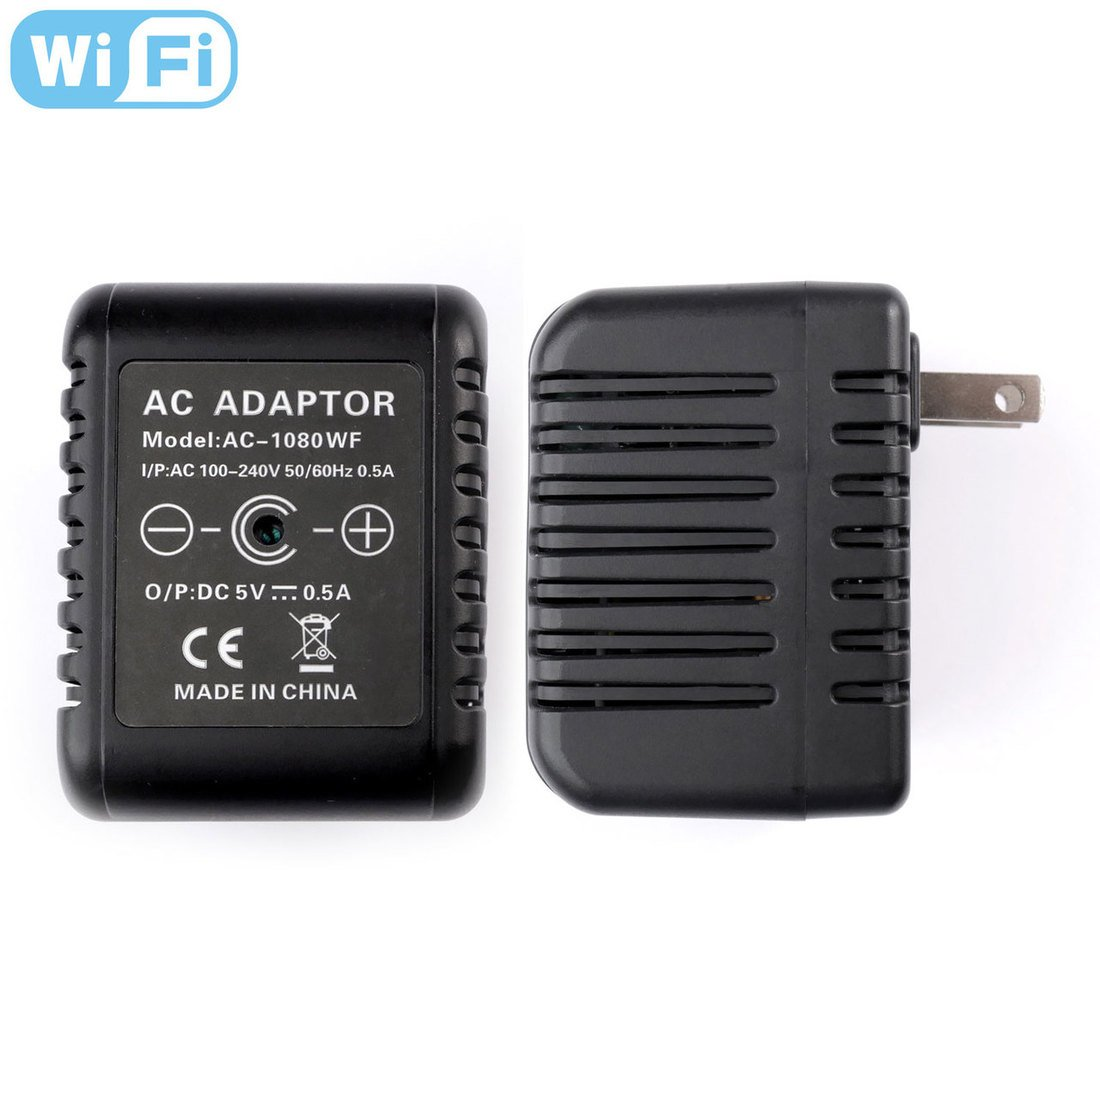 RecorderGear AC50W HD 1080P WiFi IP Hidden Camera AC Adapter / Motion Activated / Live Stream iOS-Android App / Email Alerts / Covert Security Spy Nanny Cam